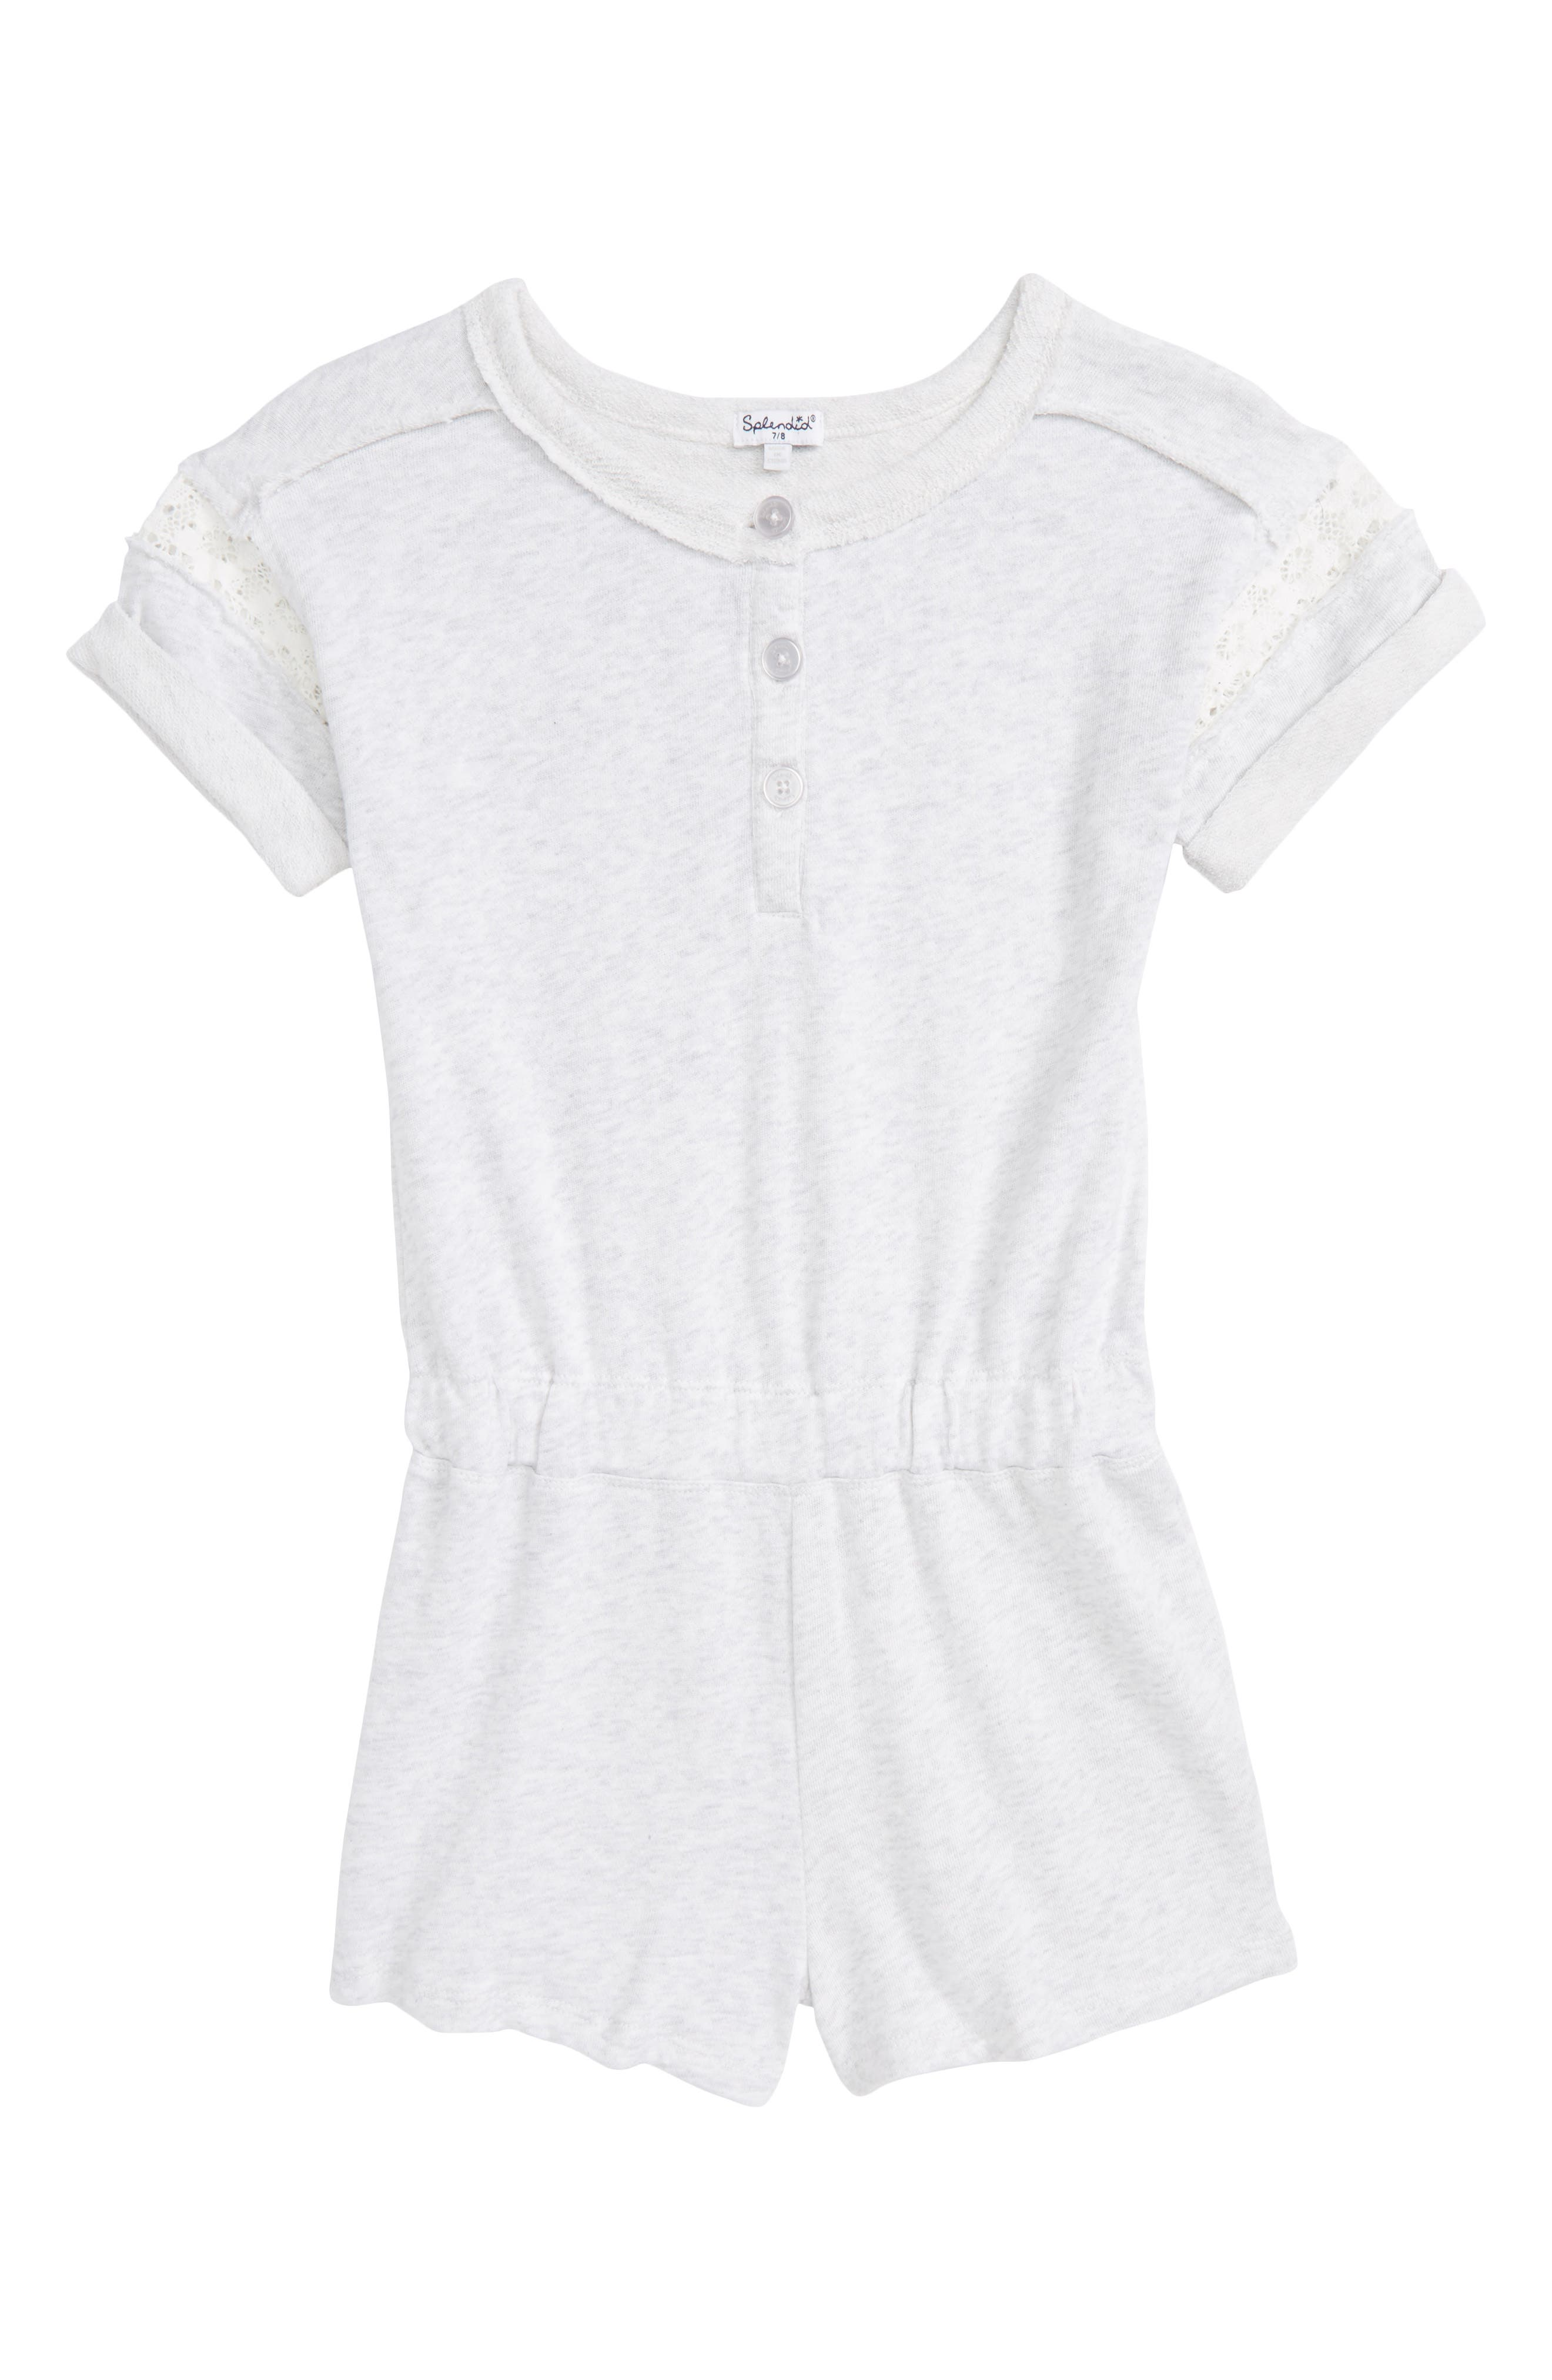 French Terry Romper,                         Main,                         color,